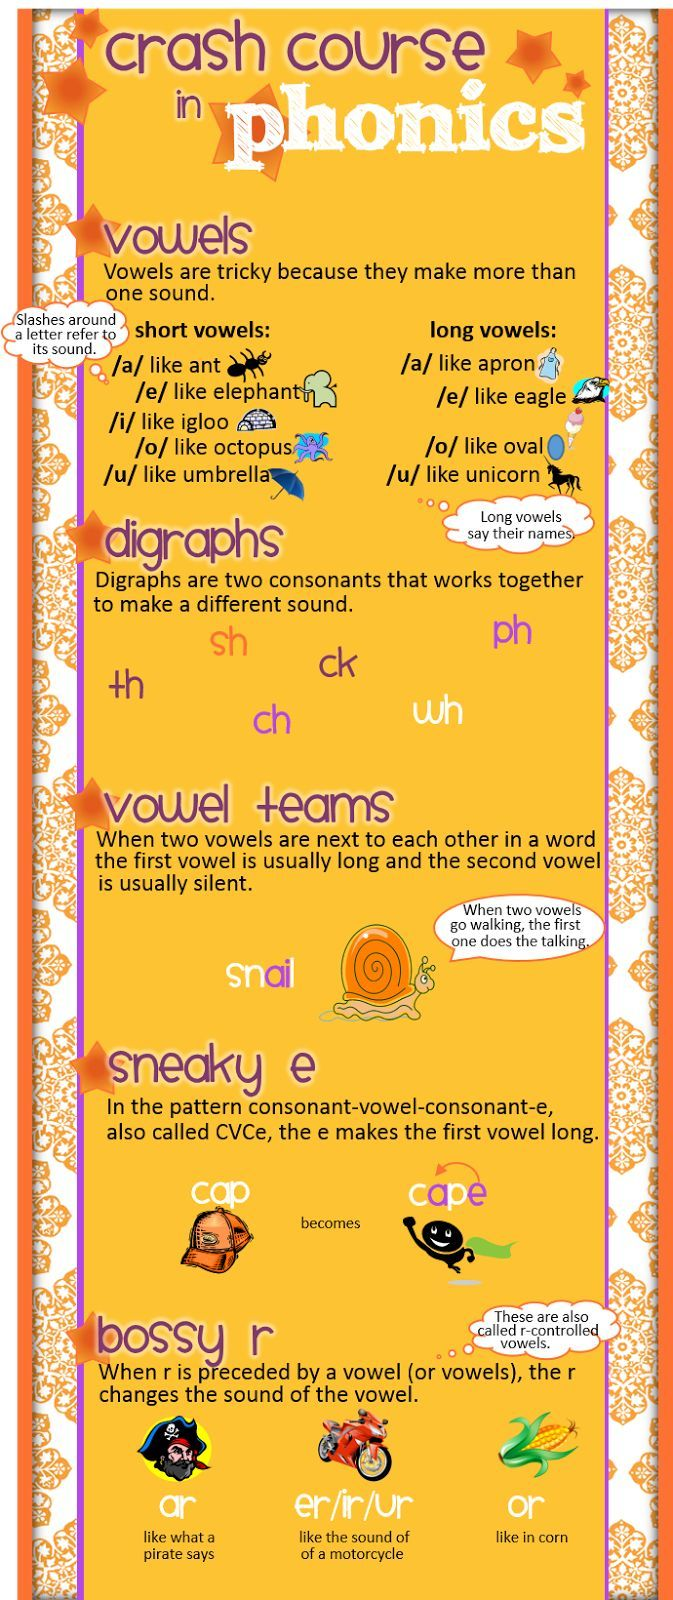 worksheet Phonics Programs 17 best images about phonics on pinterest sounds word crash course in fill the gaps left by your teacher prep program